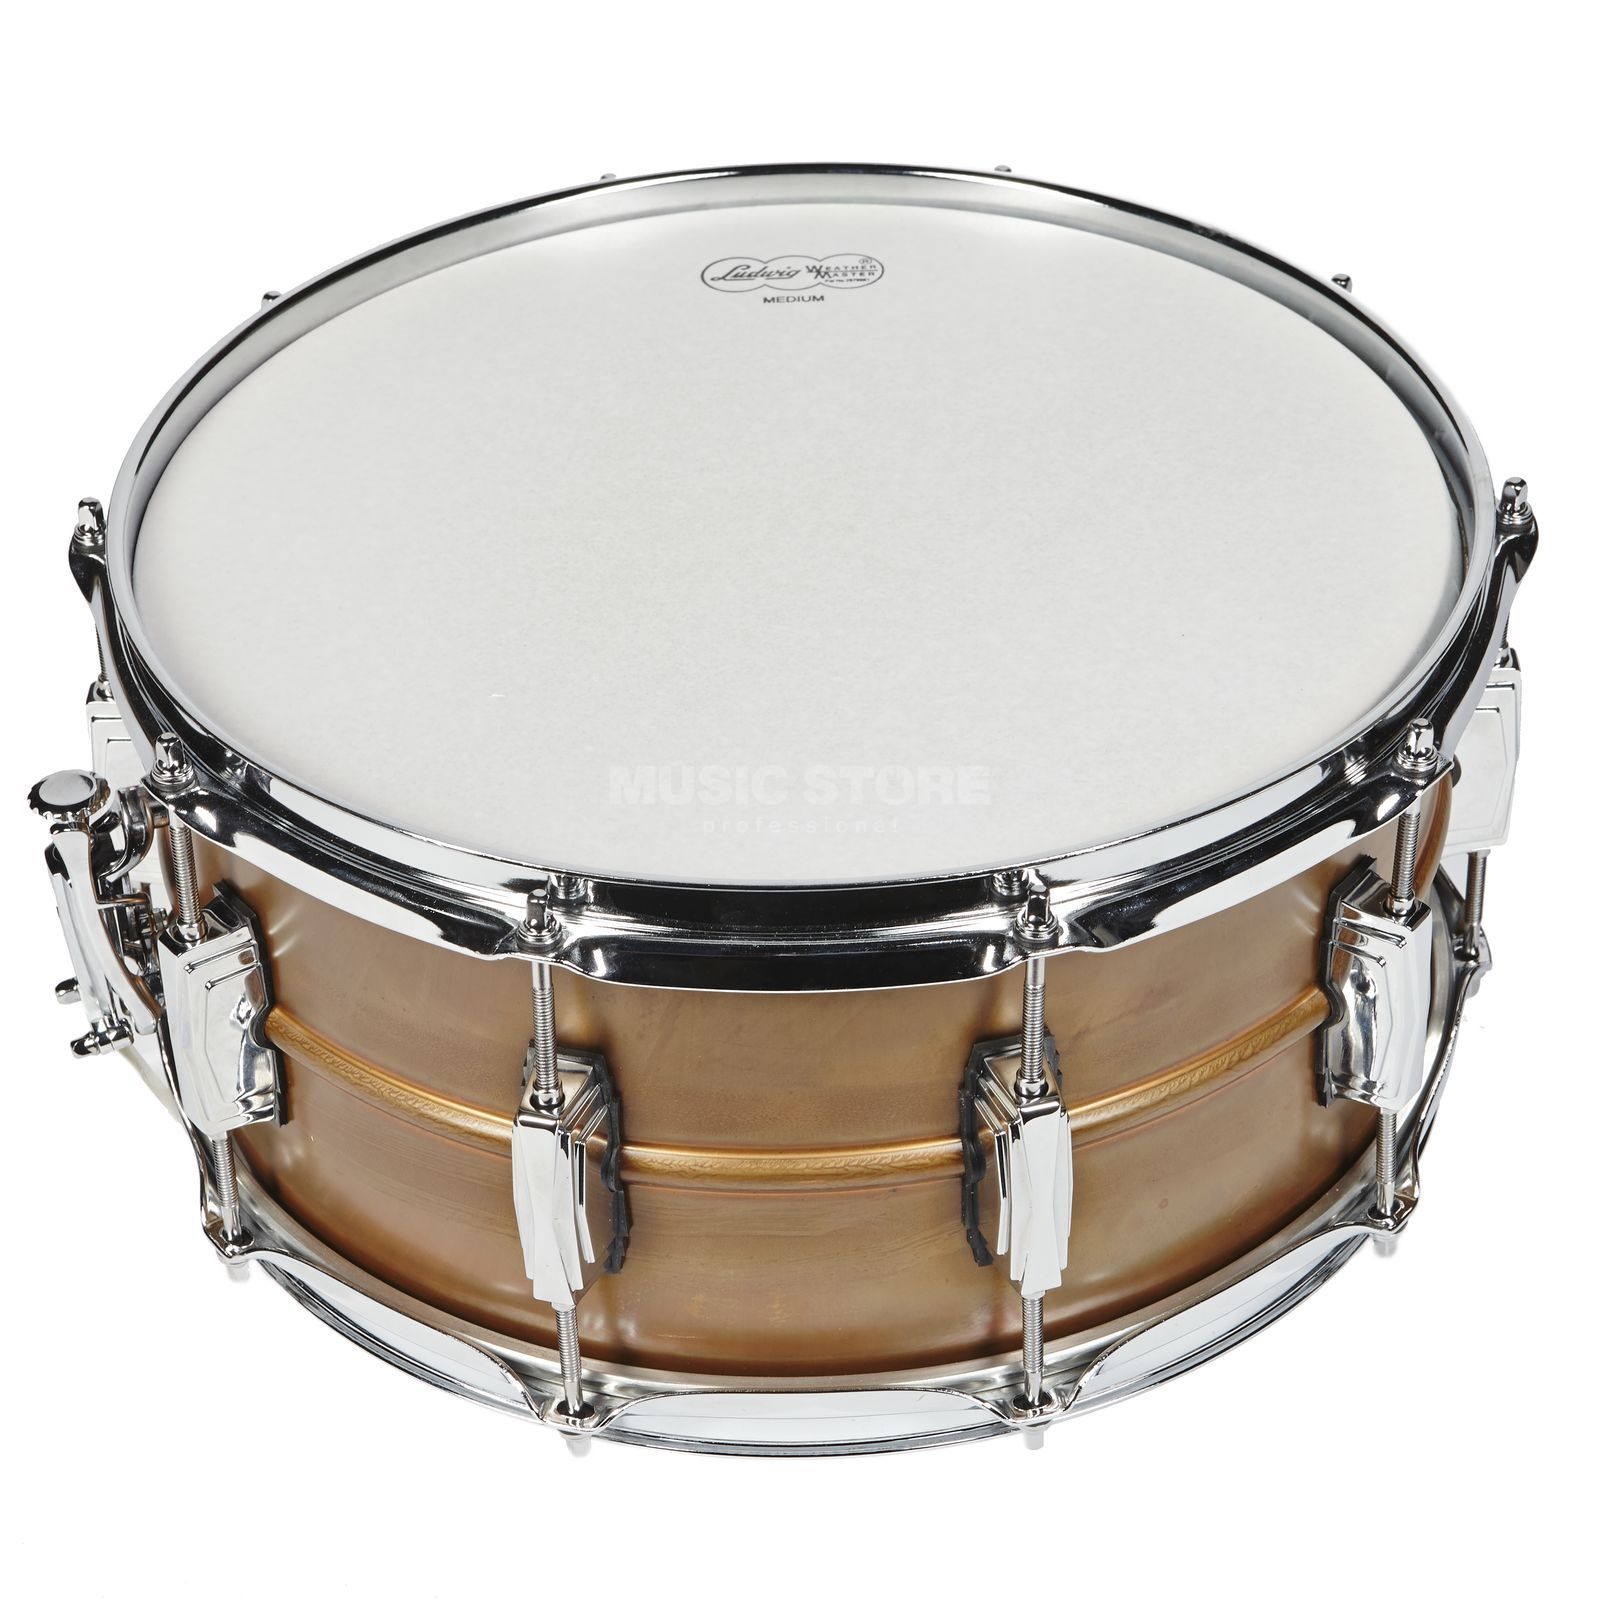 "Ludwig Copper Phonic Snare LC663, 14""x6,5"", Raw Patina Copper, Overstock Produktbild"